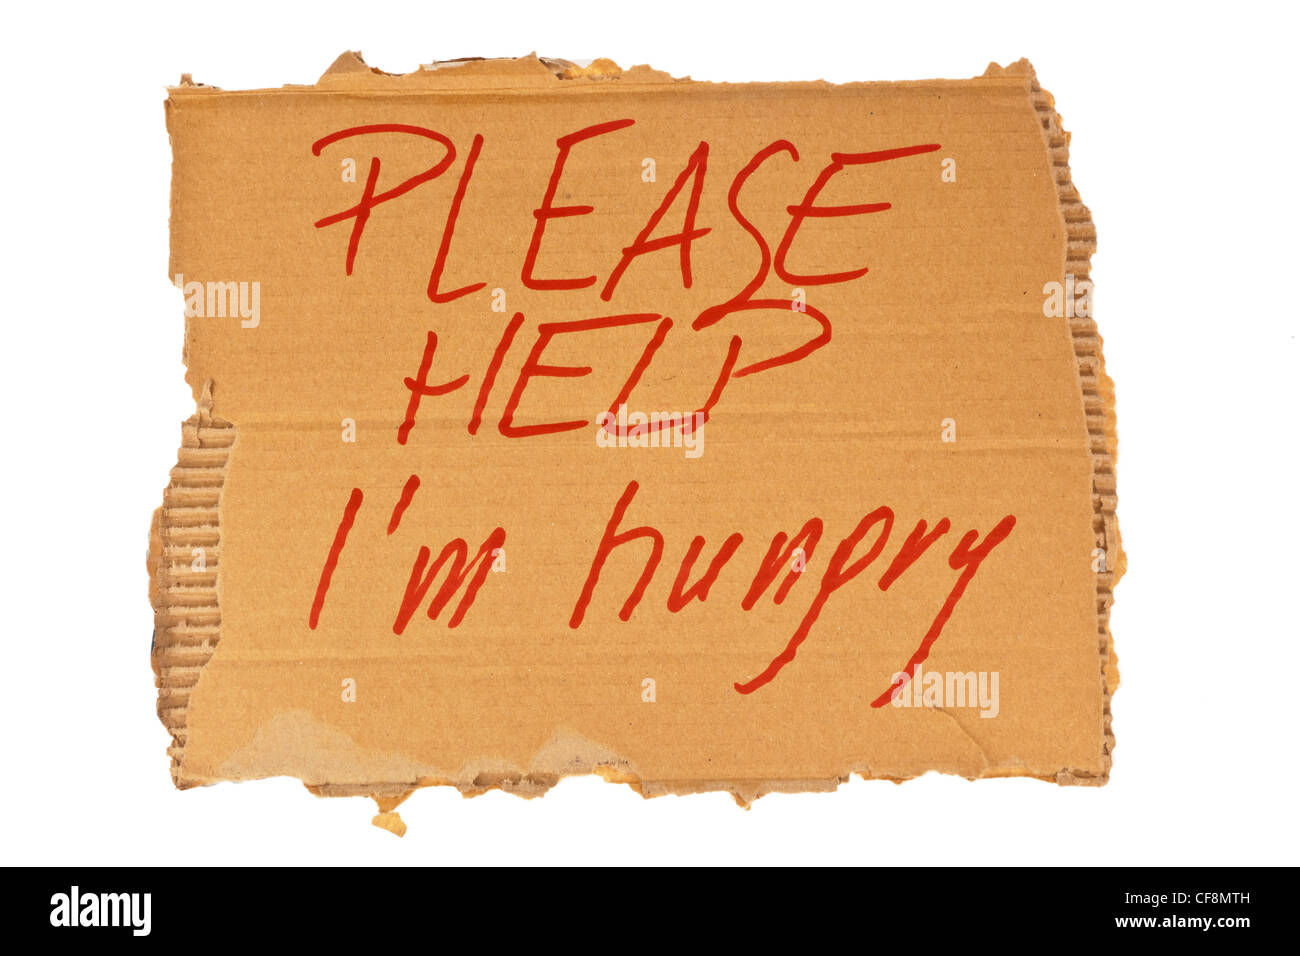 the cardboard sign of a homeless person. isolated on white background - Stock Image